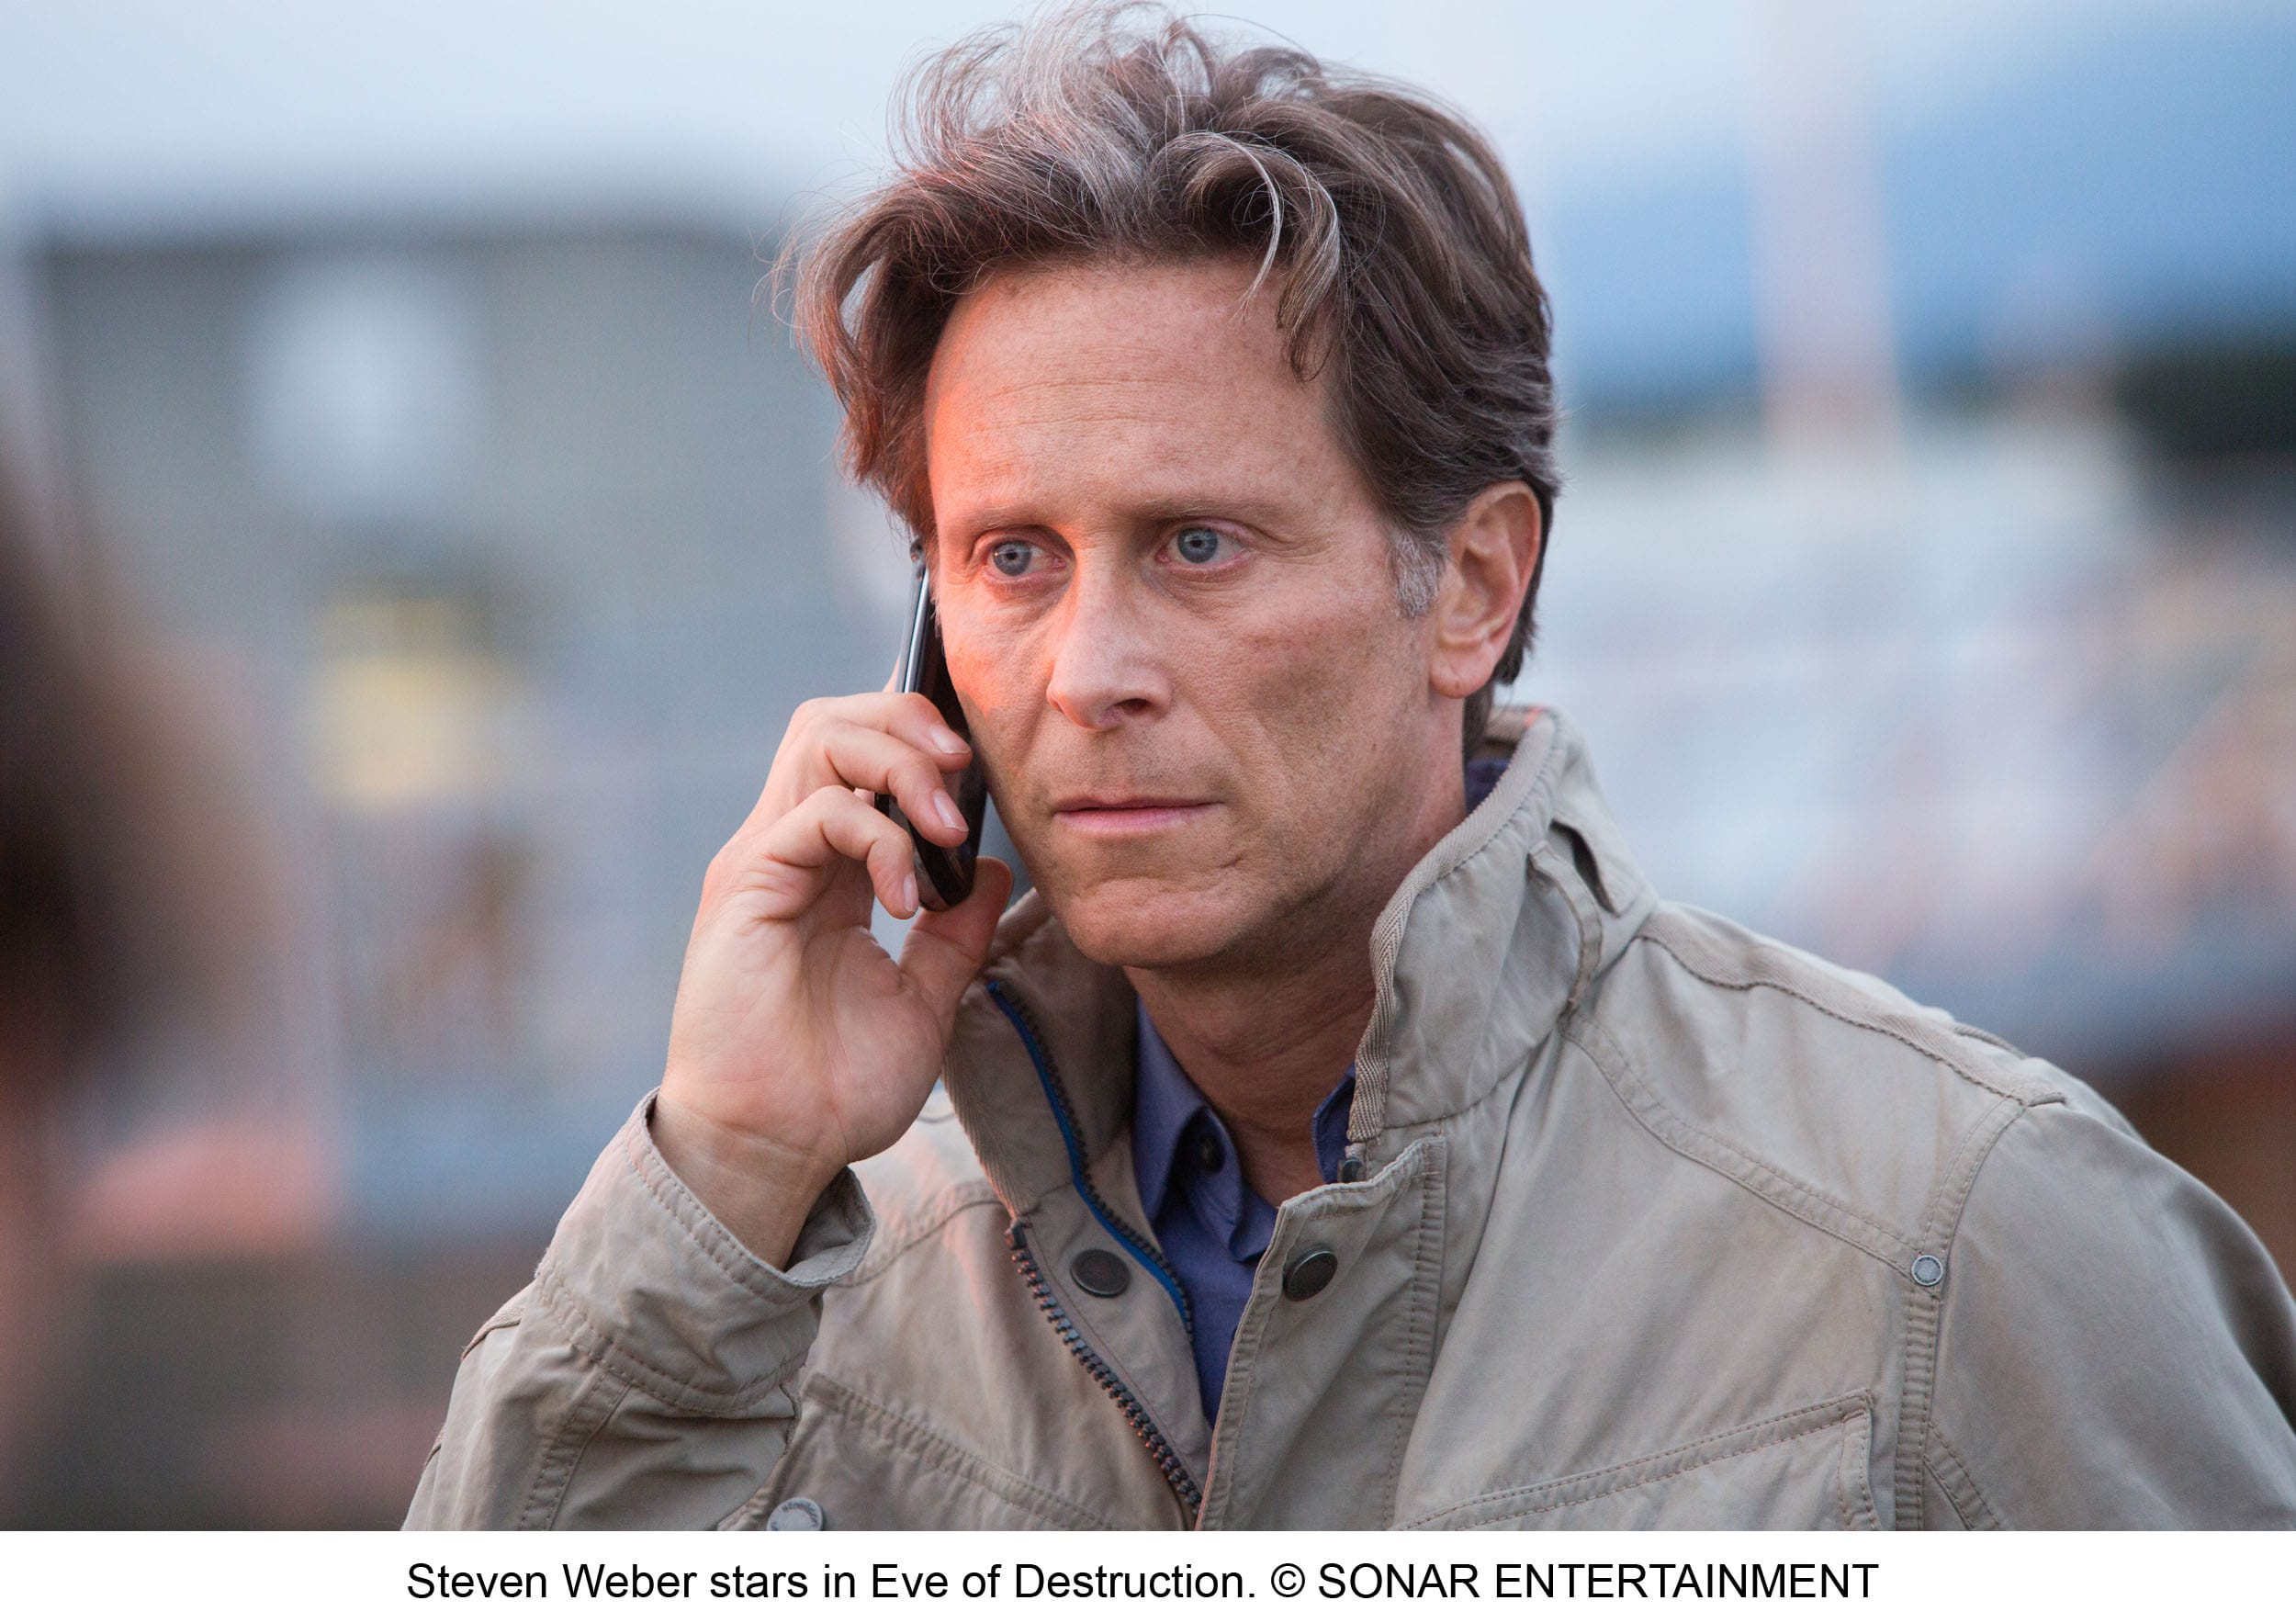 Steven Weber Backgrounds